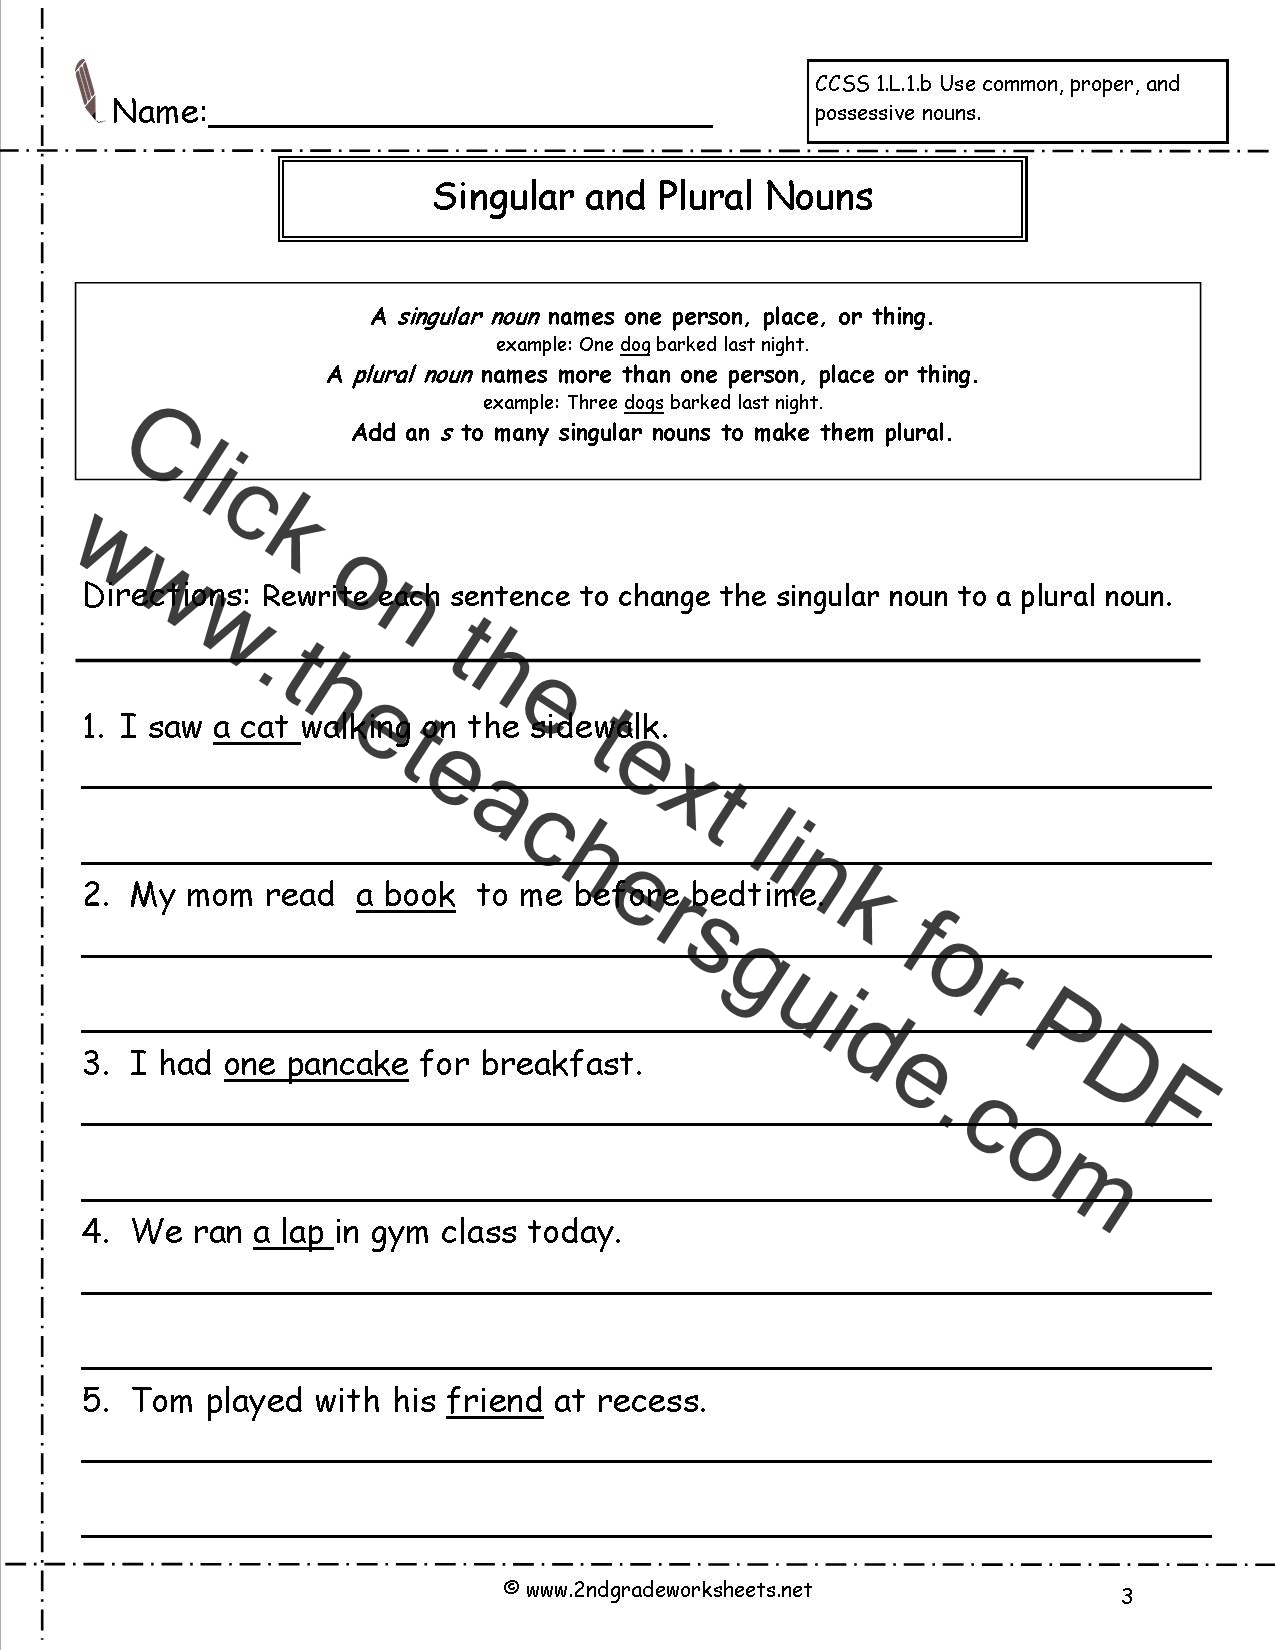 worksheet Plural Possessive Nouns Worksheet singular and plural possessive nouns worksheets 3rd grade on 3 worksheets